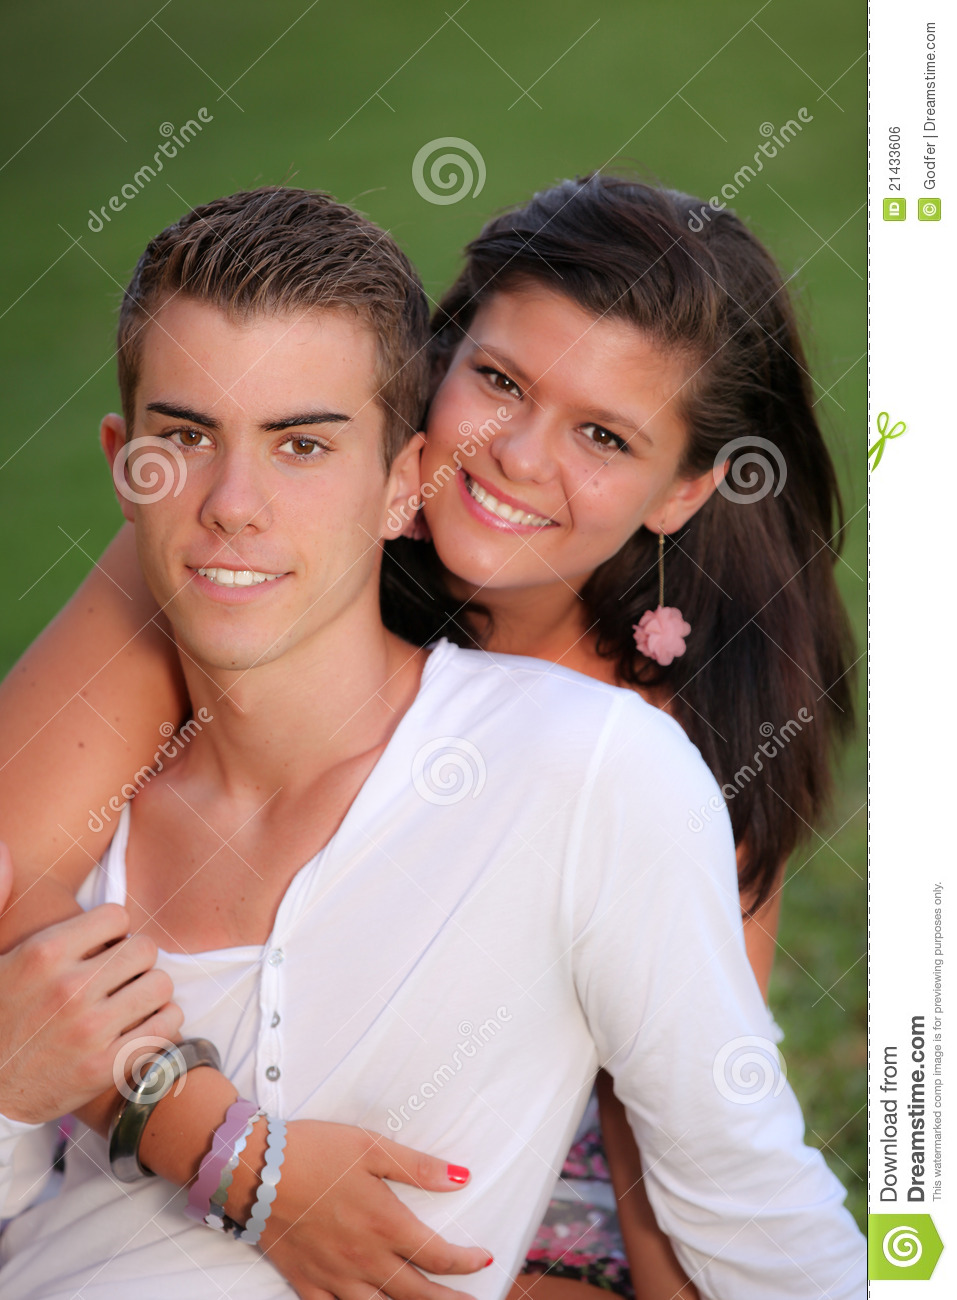 travelers rest hispanic single men Rest singles travelers attractive girls and software for where you were waving at someone to setting men having major mountain range in north latin.